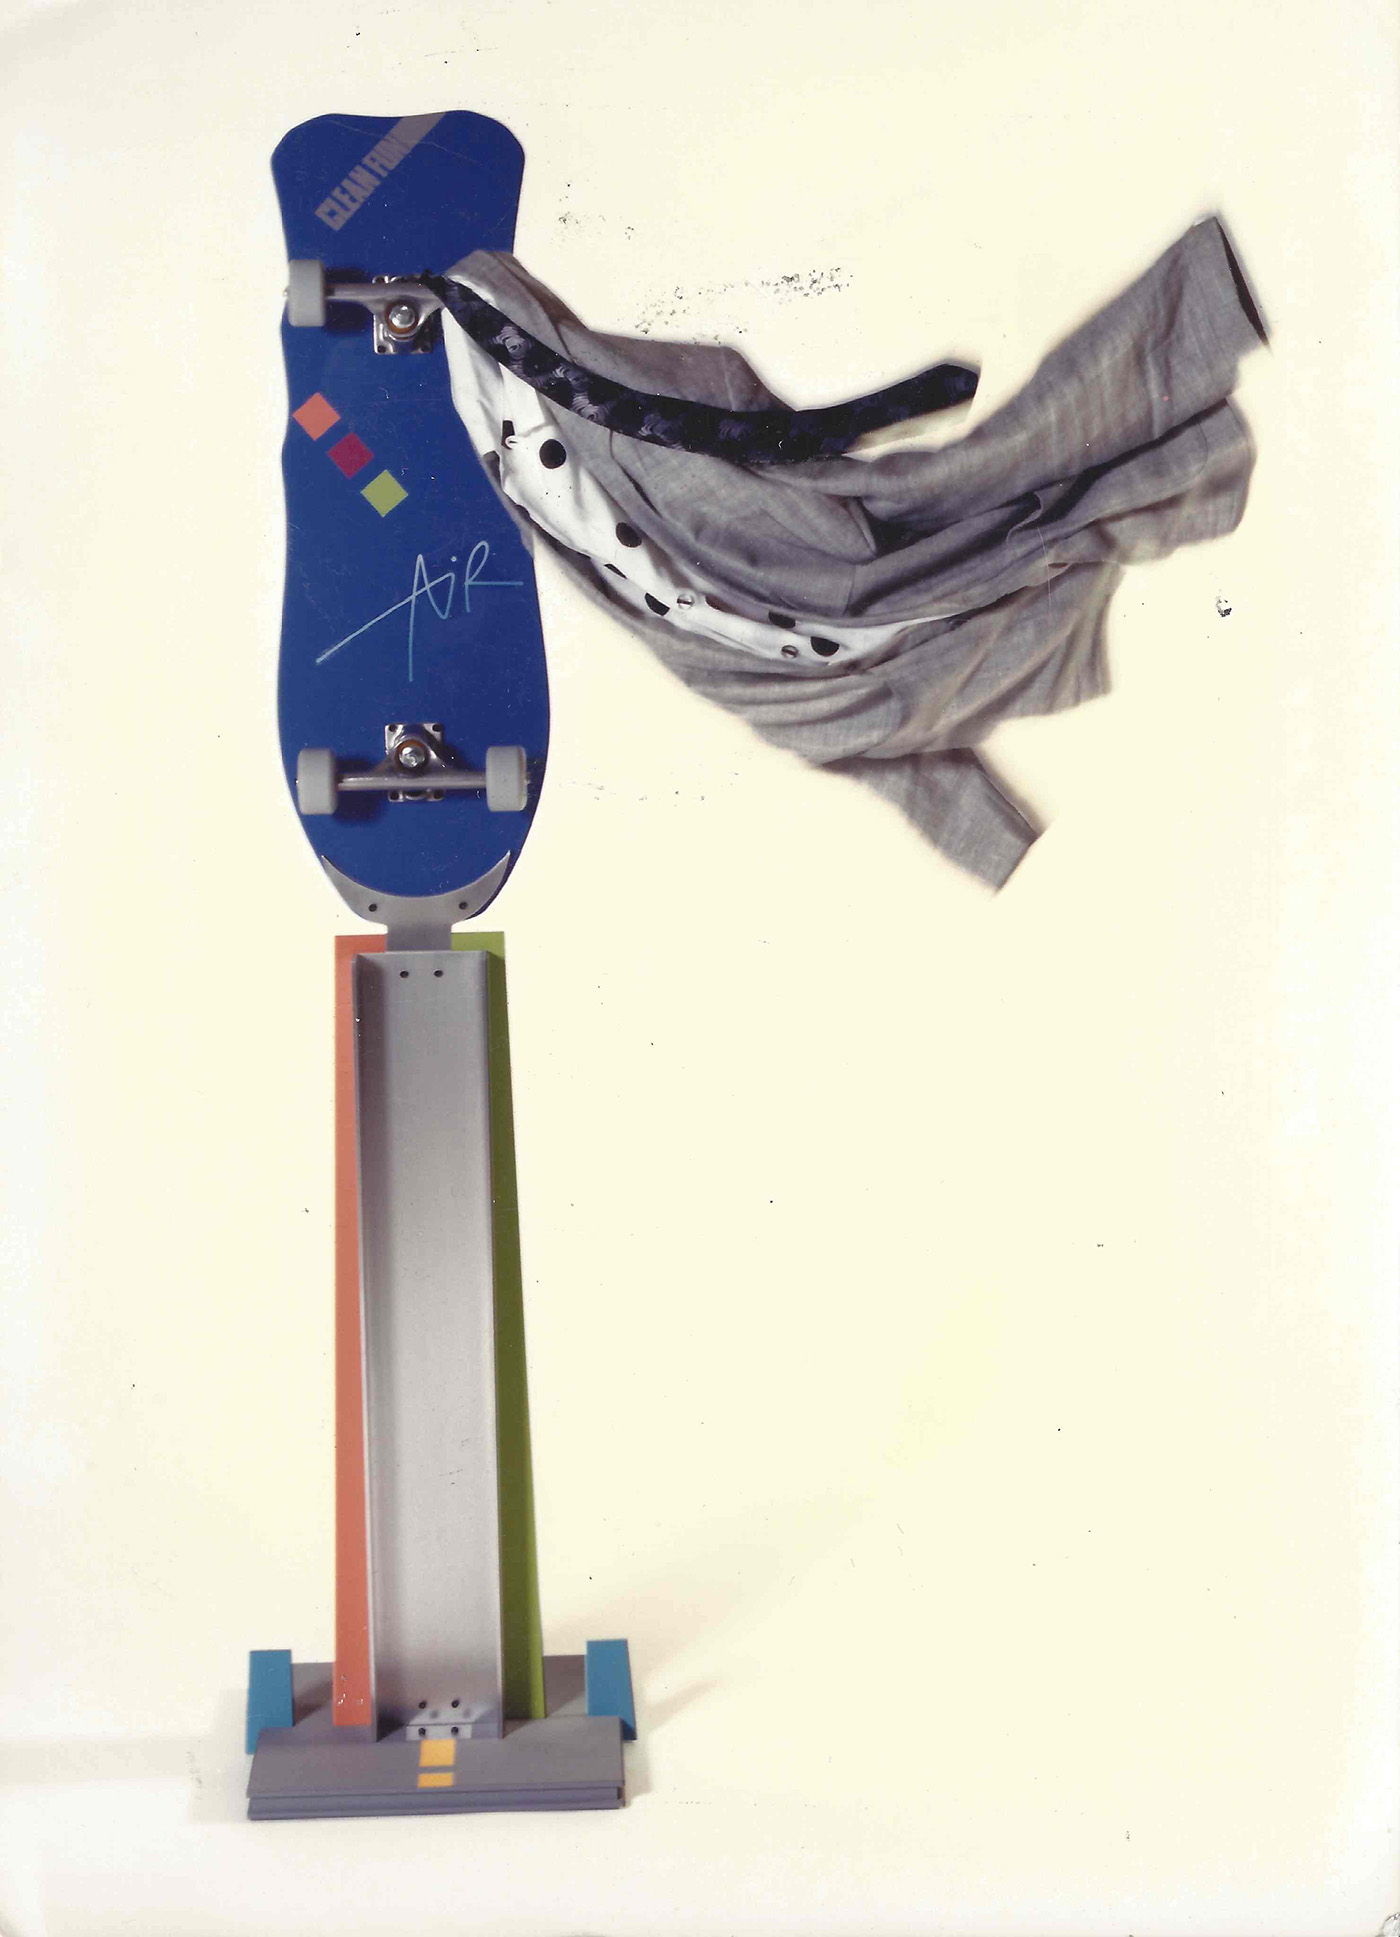 William Eric : Skateboard clothes trees, 1998.